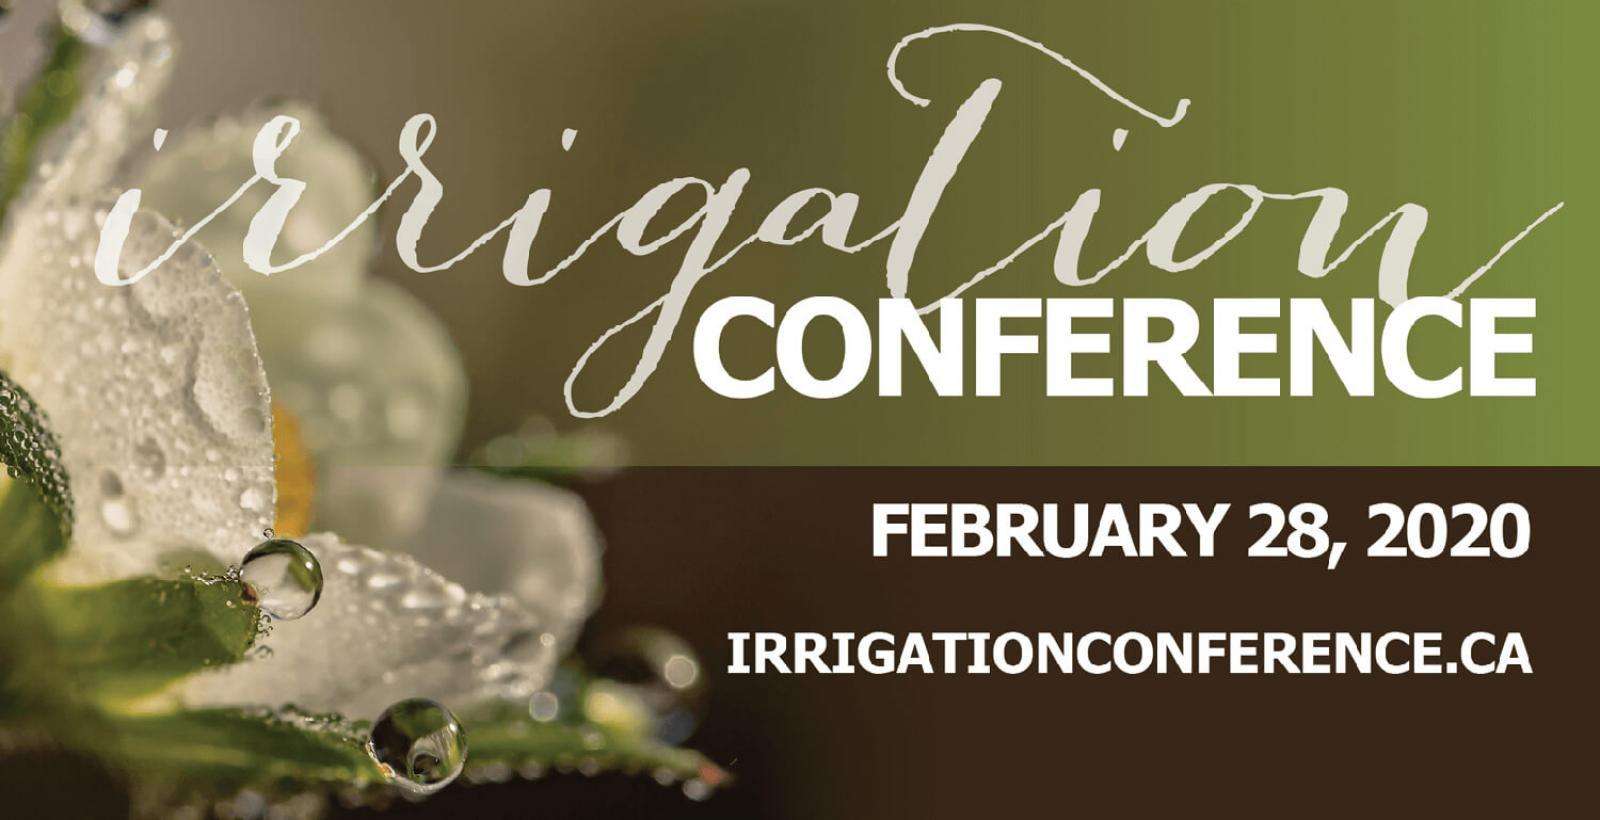 Irrigation Conference 2020